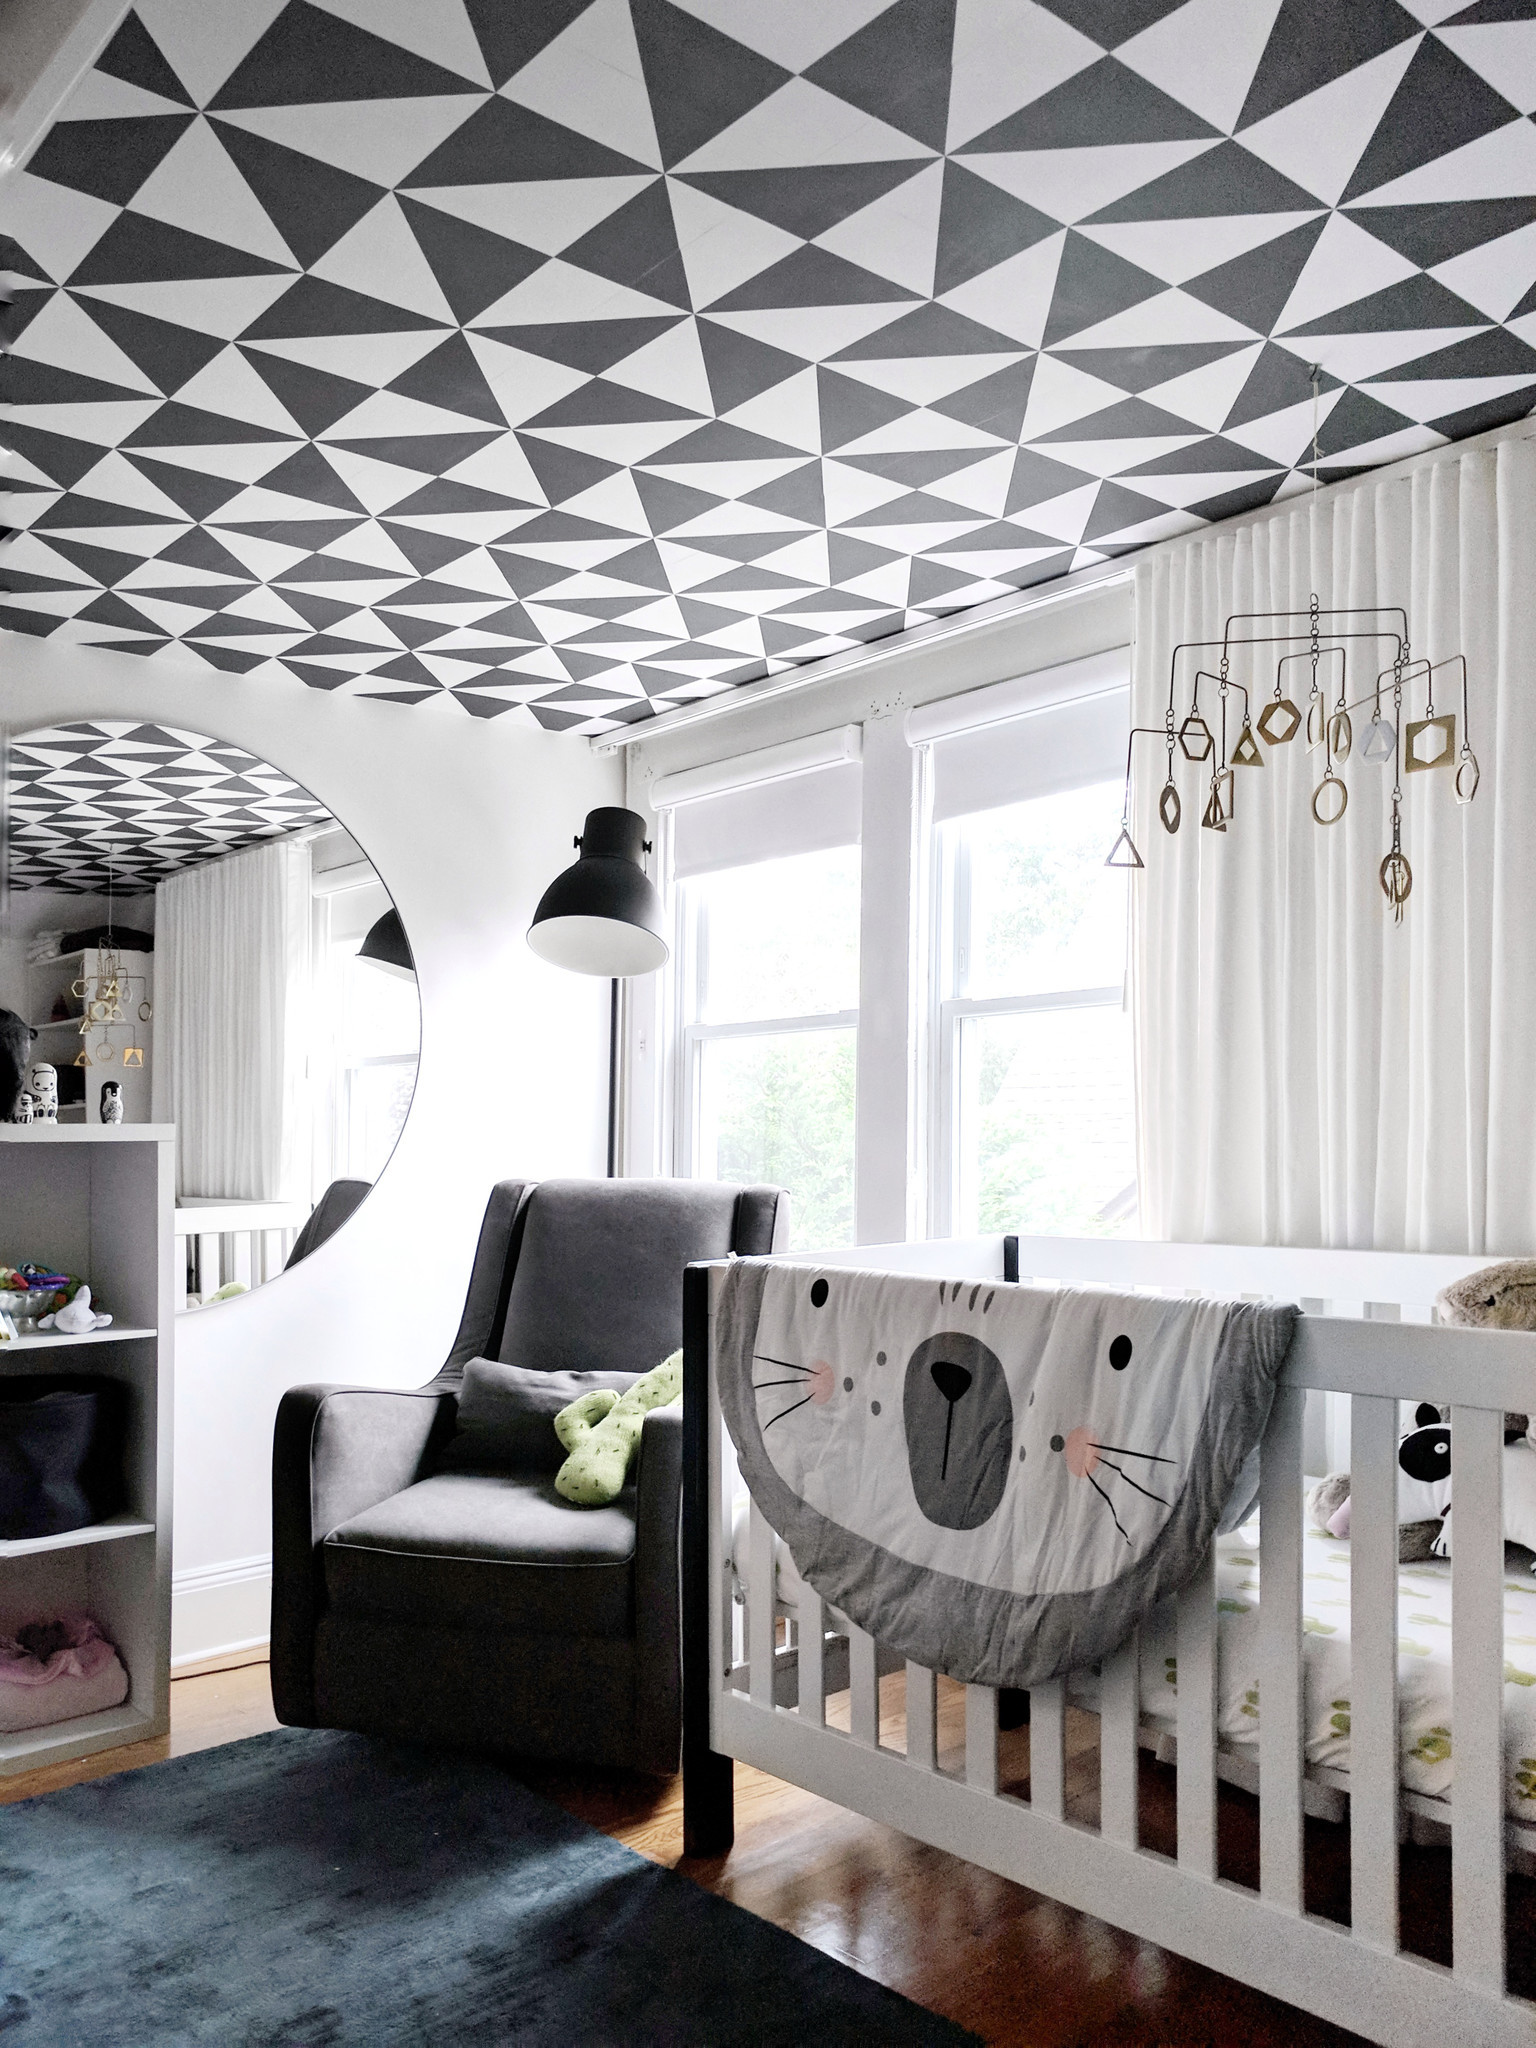 5th Wall: Designer Crystal Sinclair used graphic wallpaper by Chasing Paper on a nursery ceiling. Cr